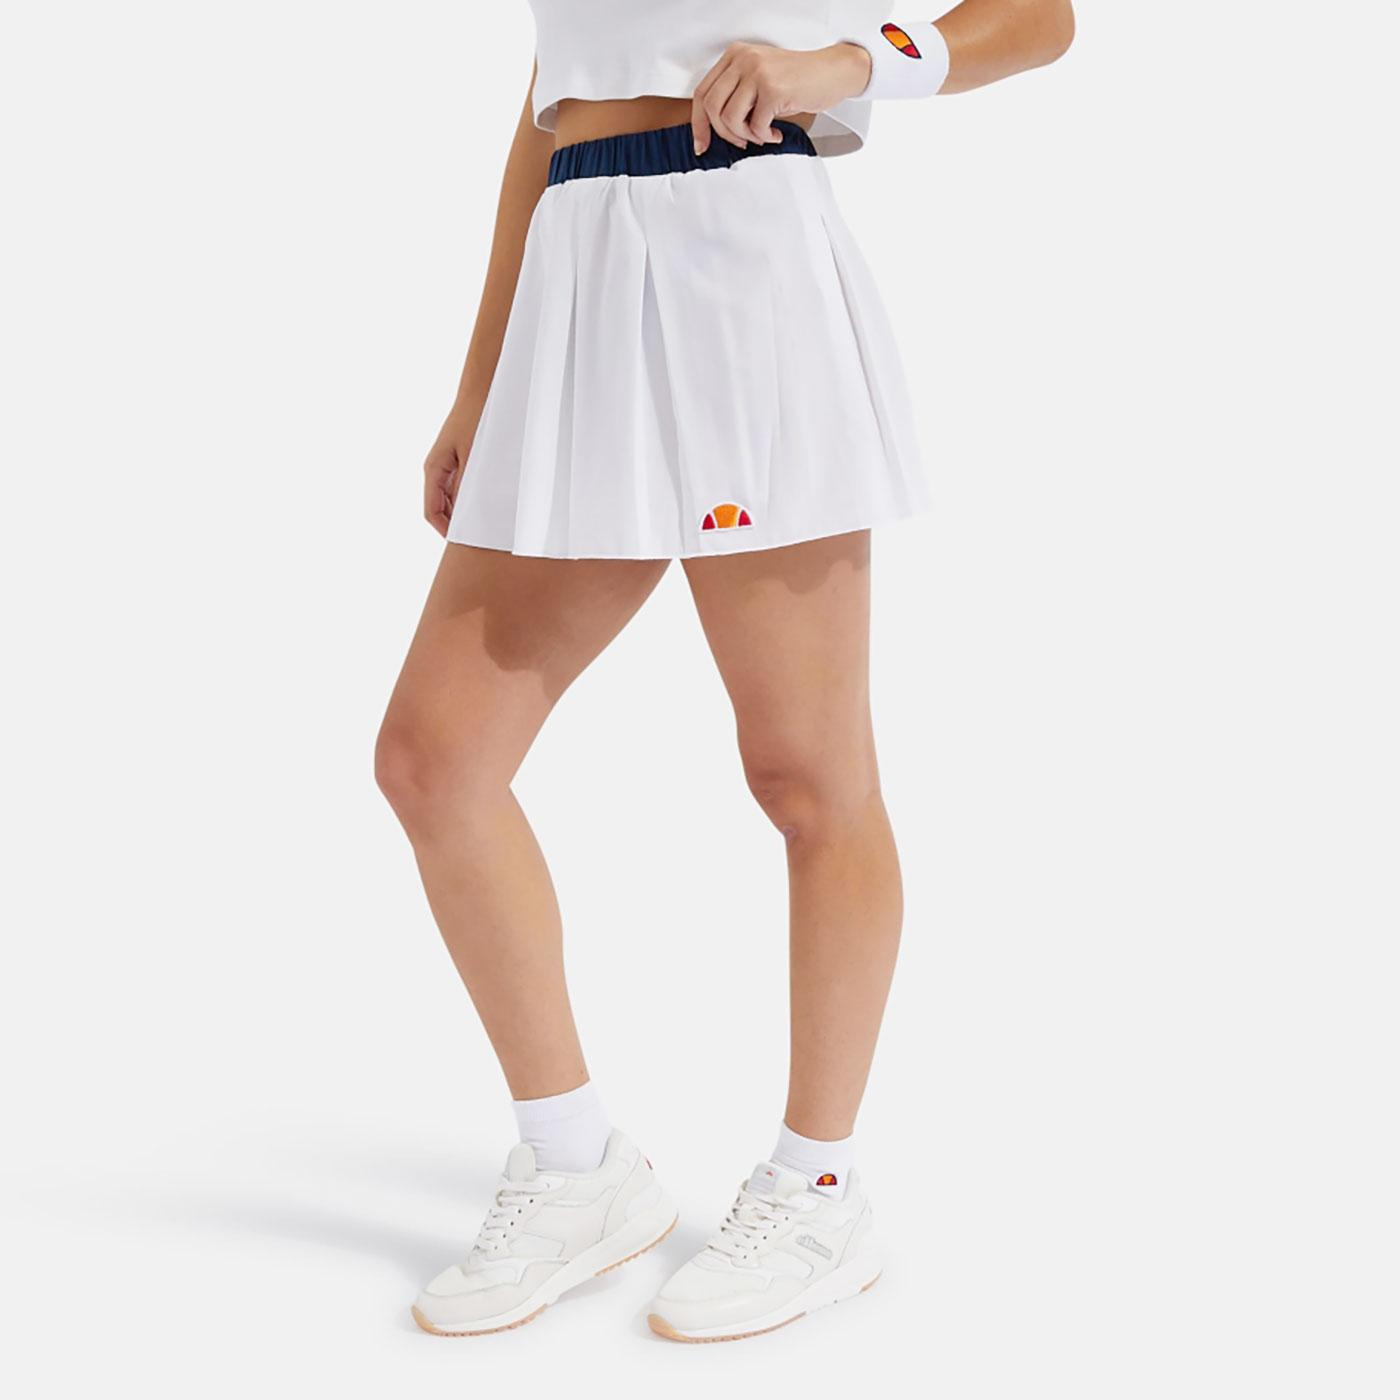 Annuziata ELLESSE Retro Pleated Tennis Skirt W